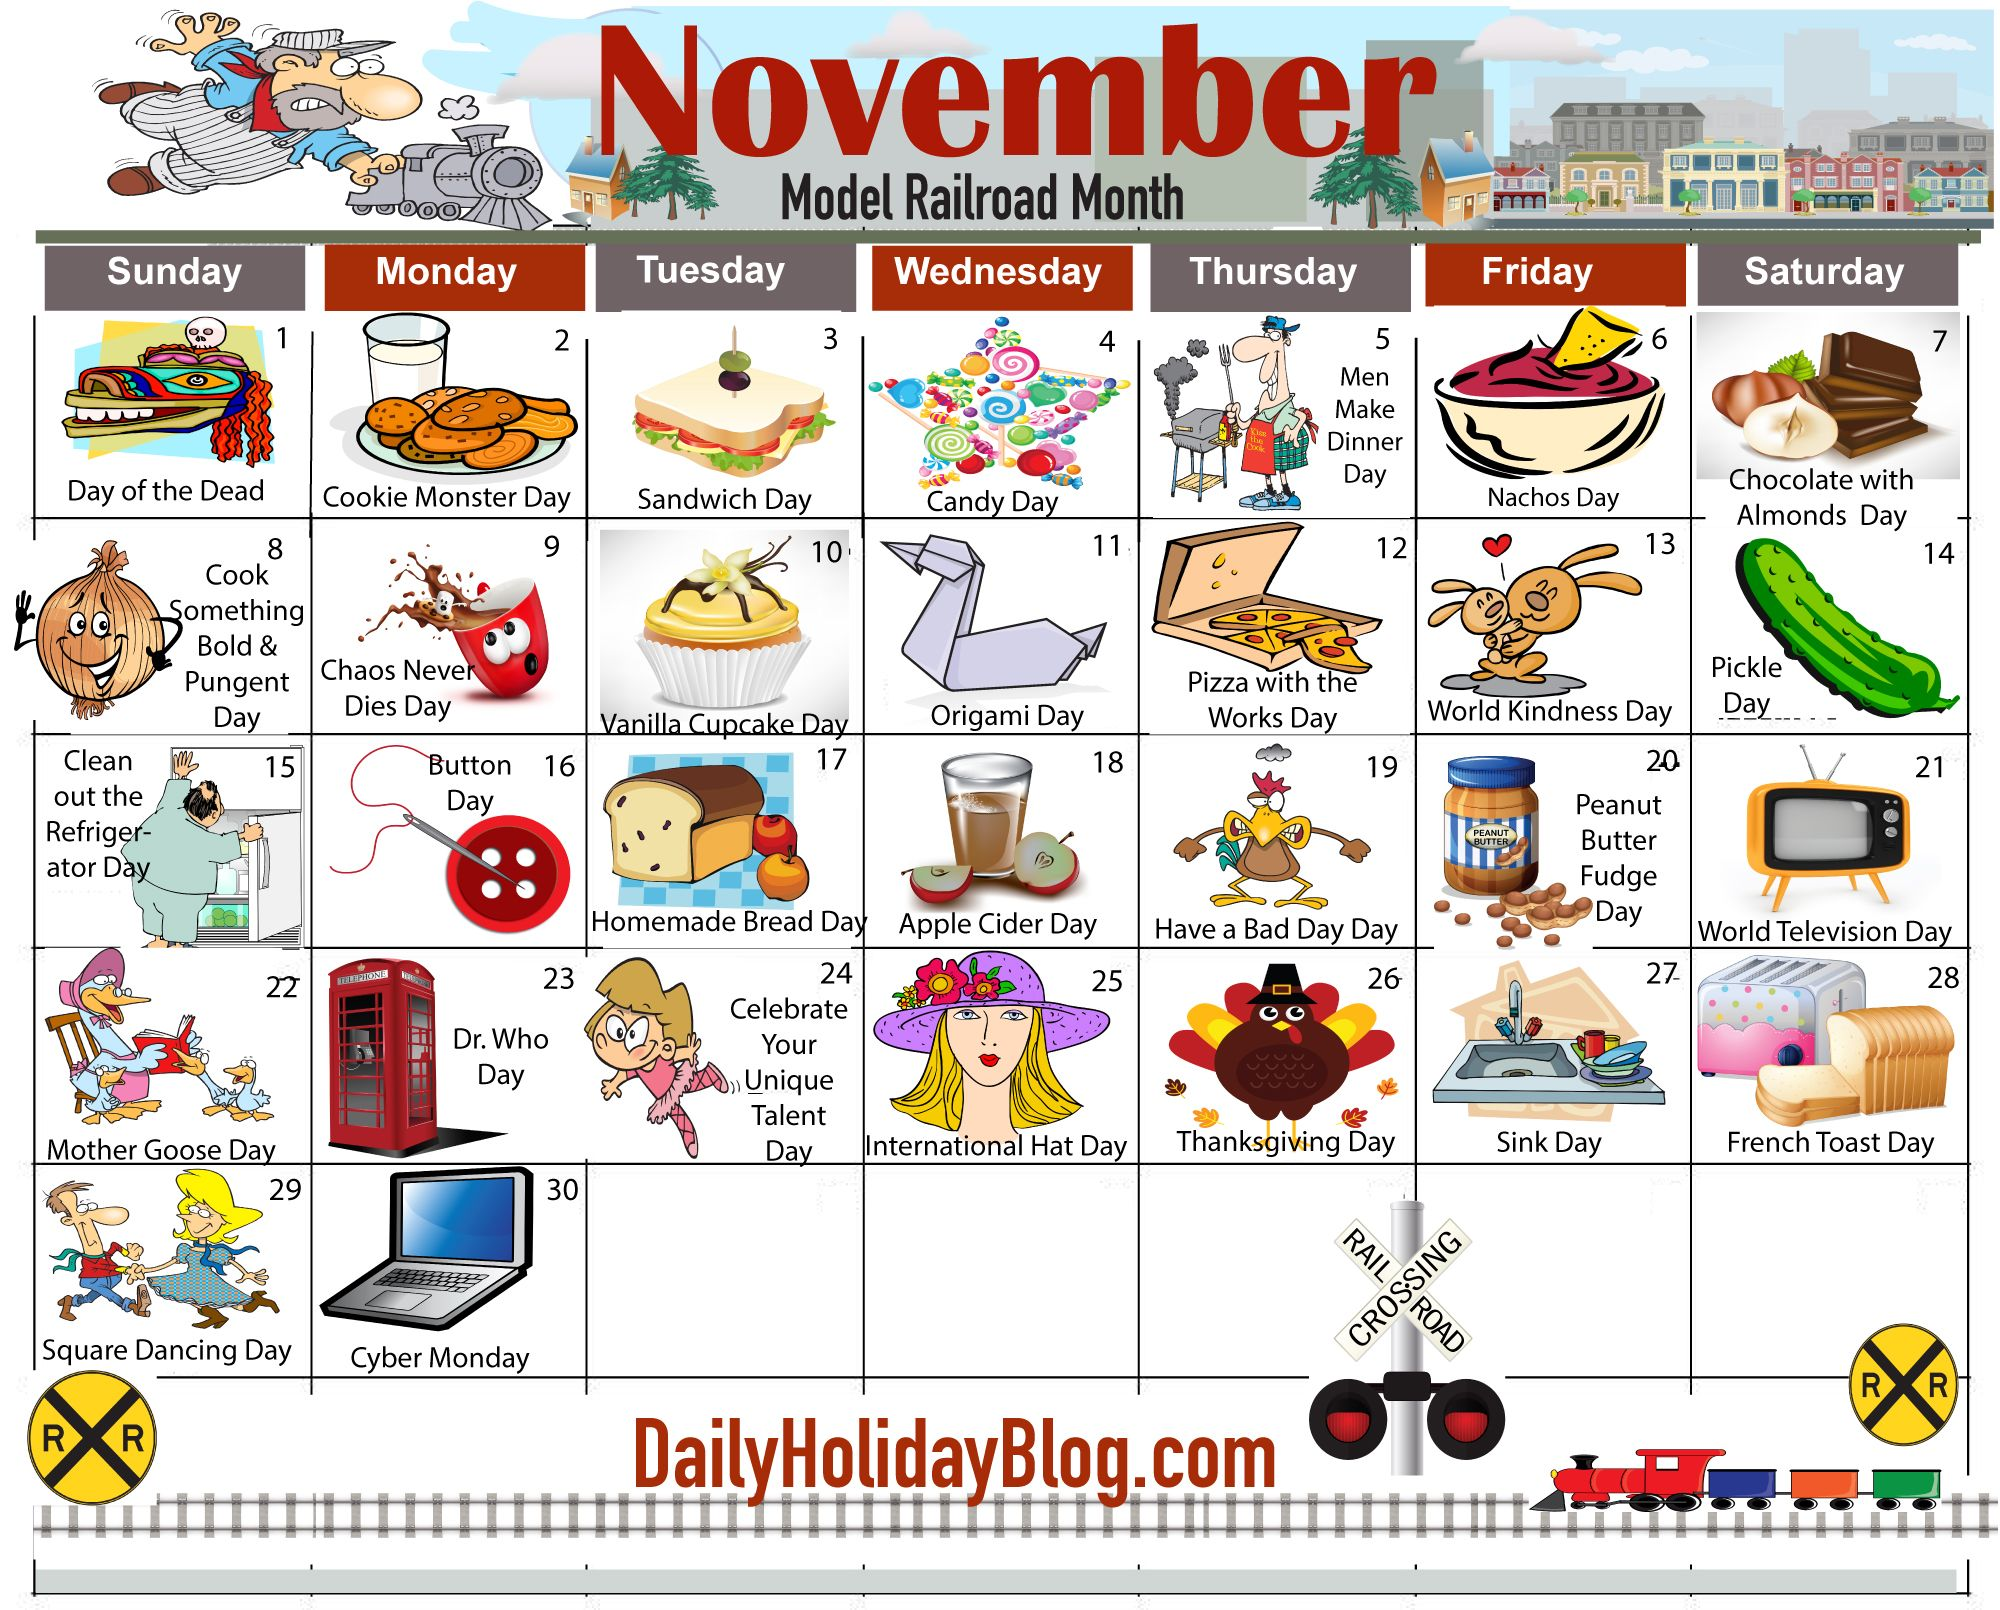 November Daily Holiday Calendar New Holidays And Traditions From